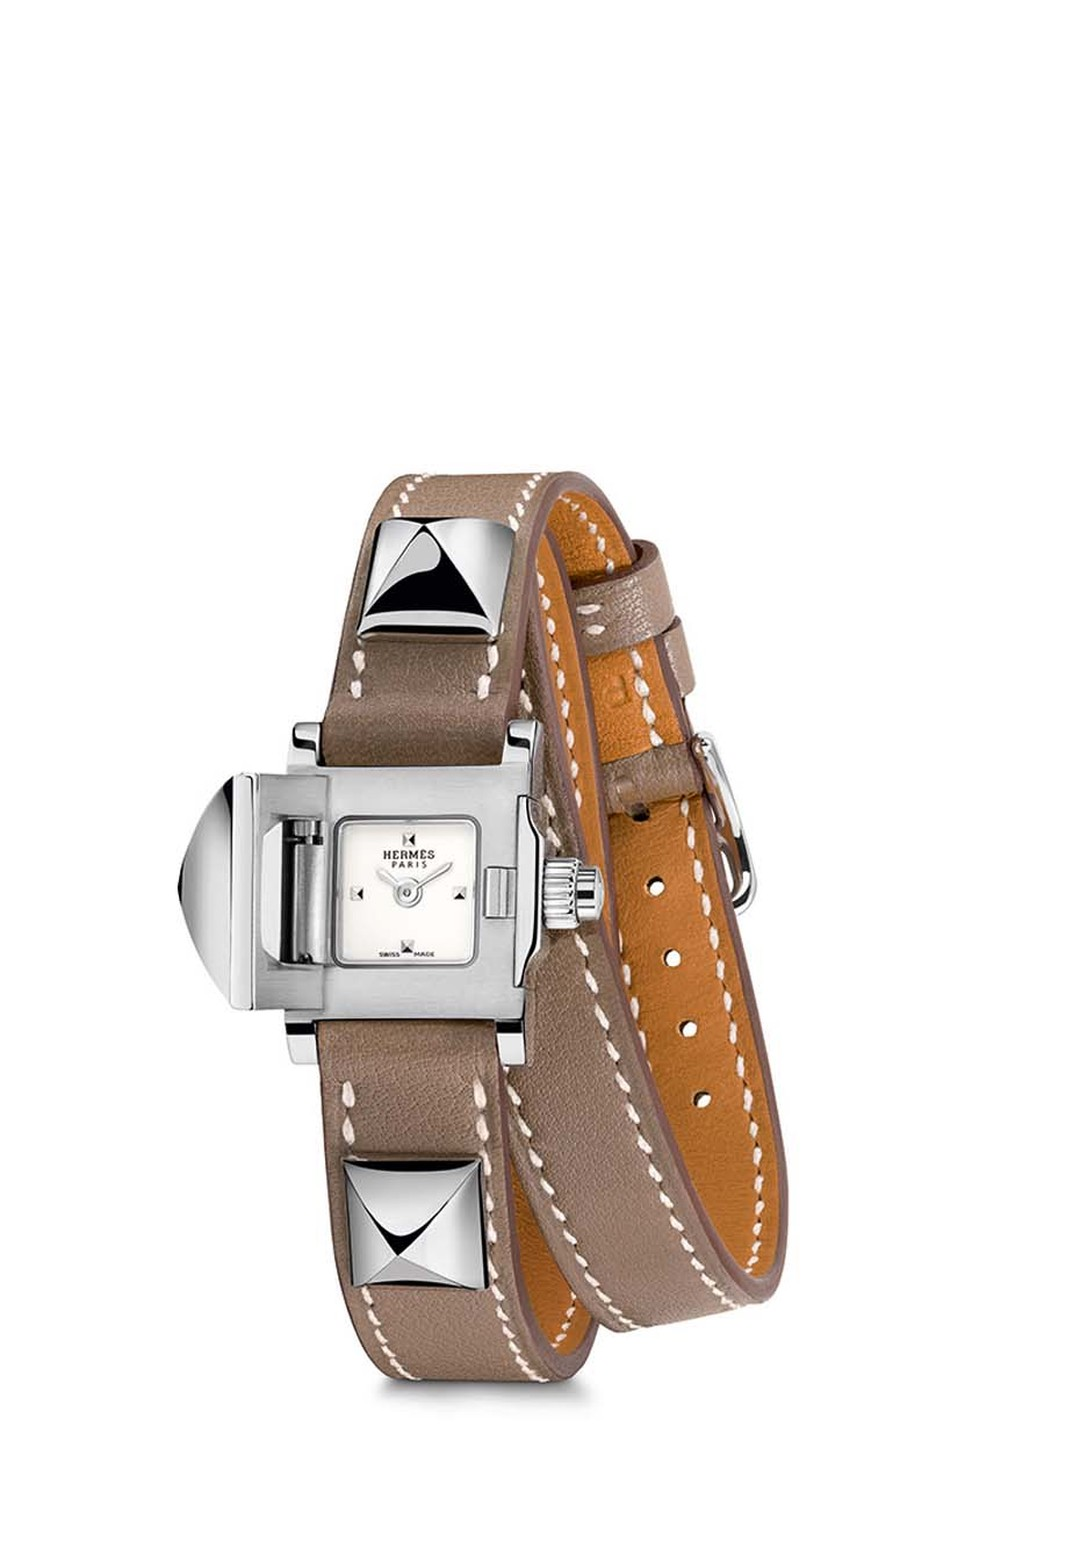 Hermès Médor watch in stainless steel watch with a smooth etoupe calfskin double strap.